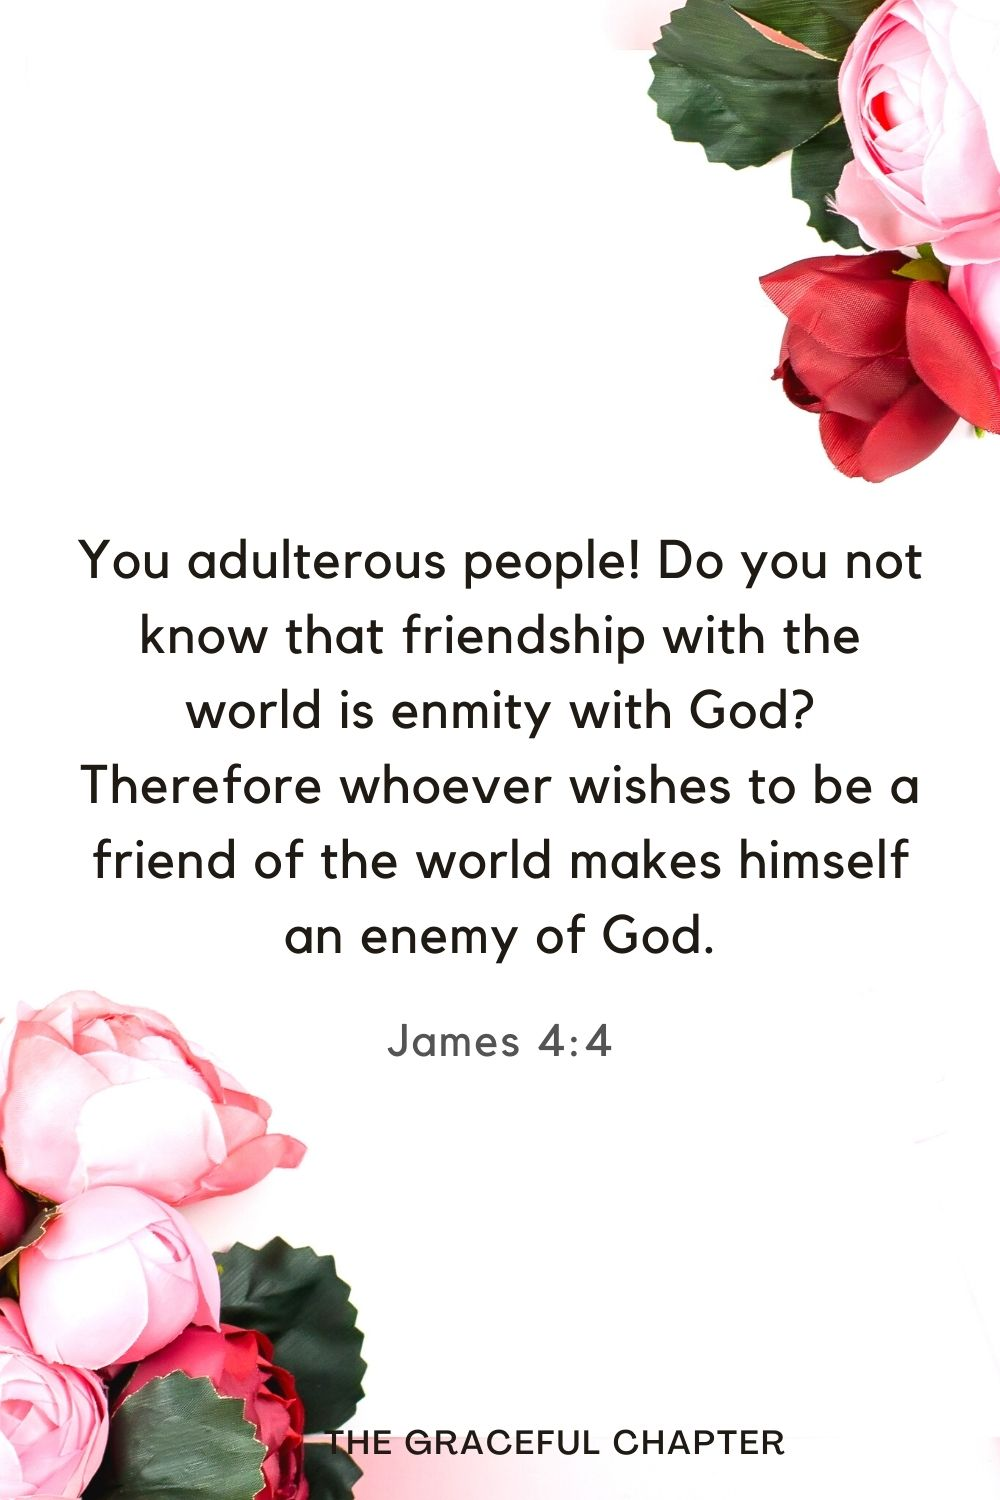 You adulterous people! Do you not know that friendship with the world is enmity with God? Therefore whoever wishes to be a friend of the world makes himself an enemy of God. James 4:4